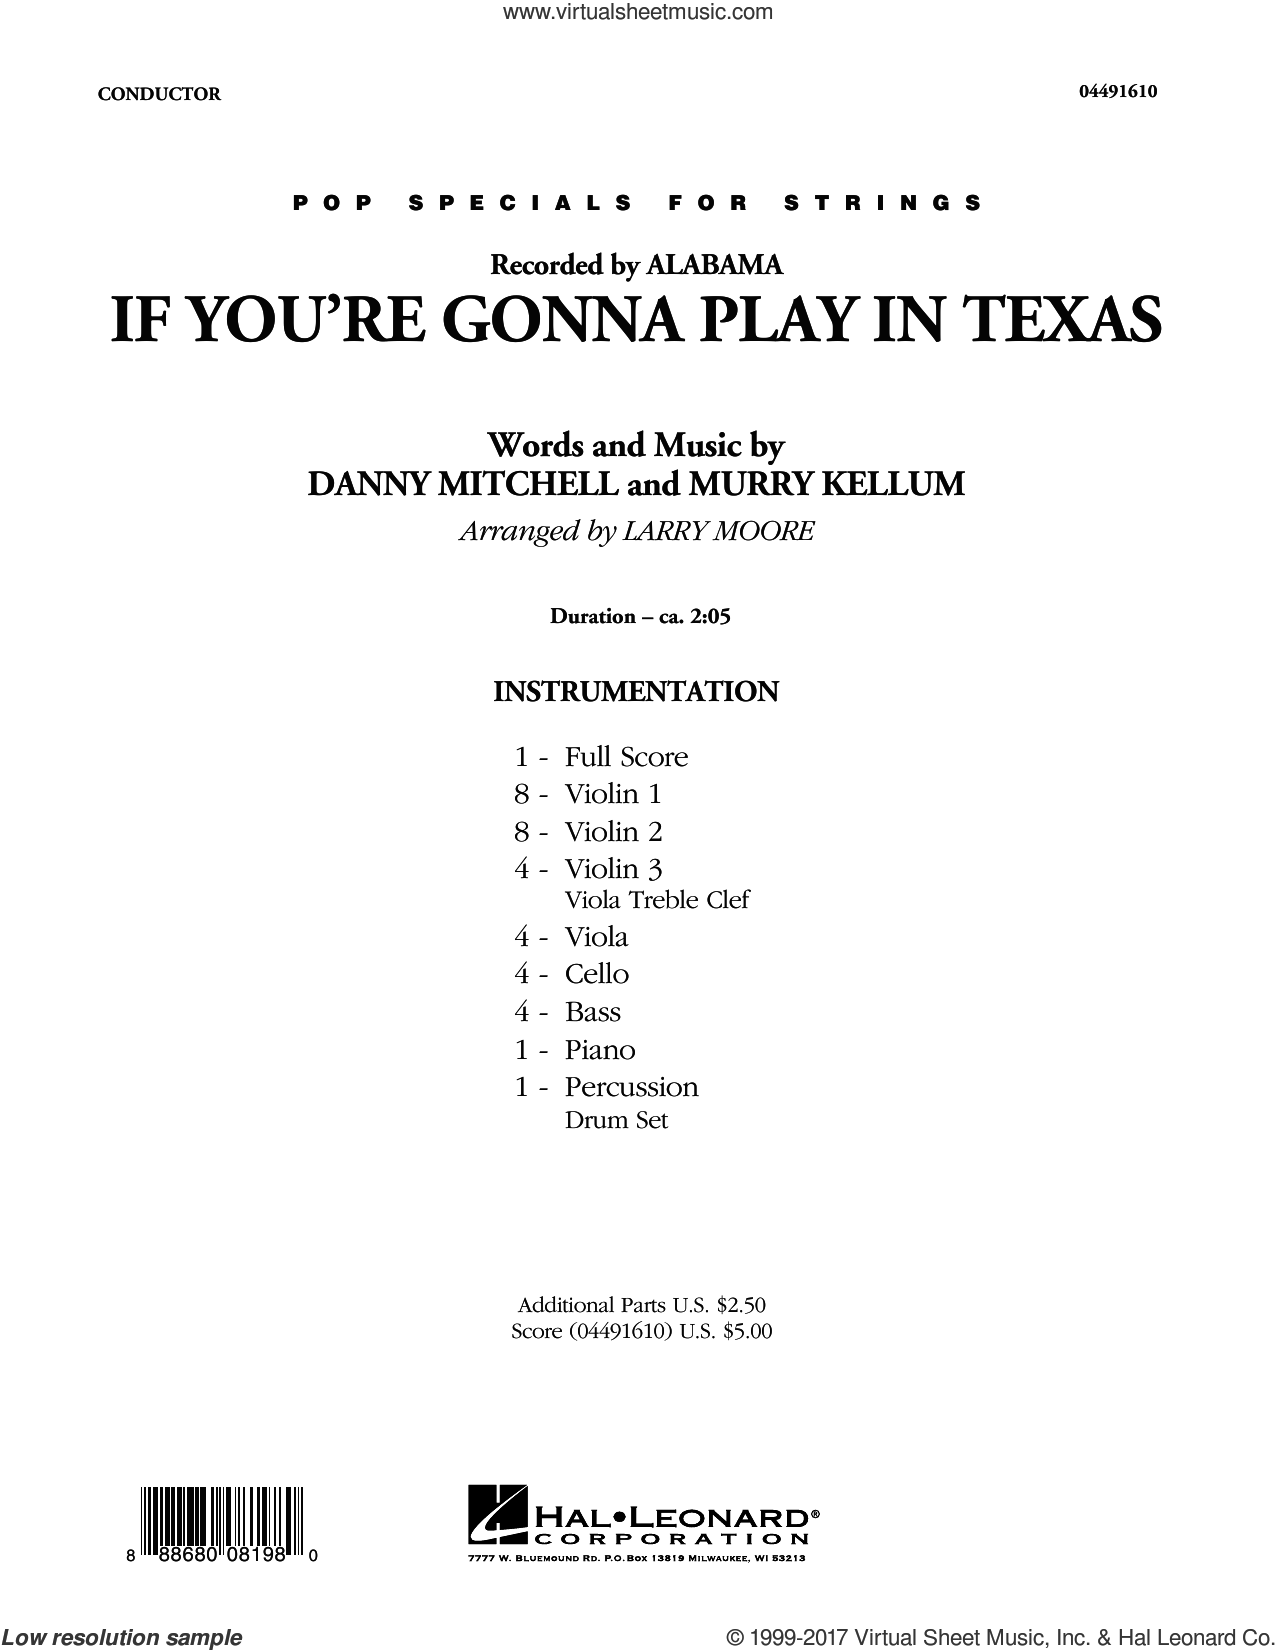 If You're Gonna Play in Texas (You Gotta Have a Fiddle in the Band) (COMPLETE) sheet music for orchestra by Larry Moore, Alabama, Dan Mitchell, Danny Mitchell and Murry Kellum, intermediate. Score Image Preview.